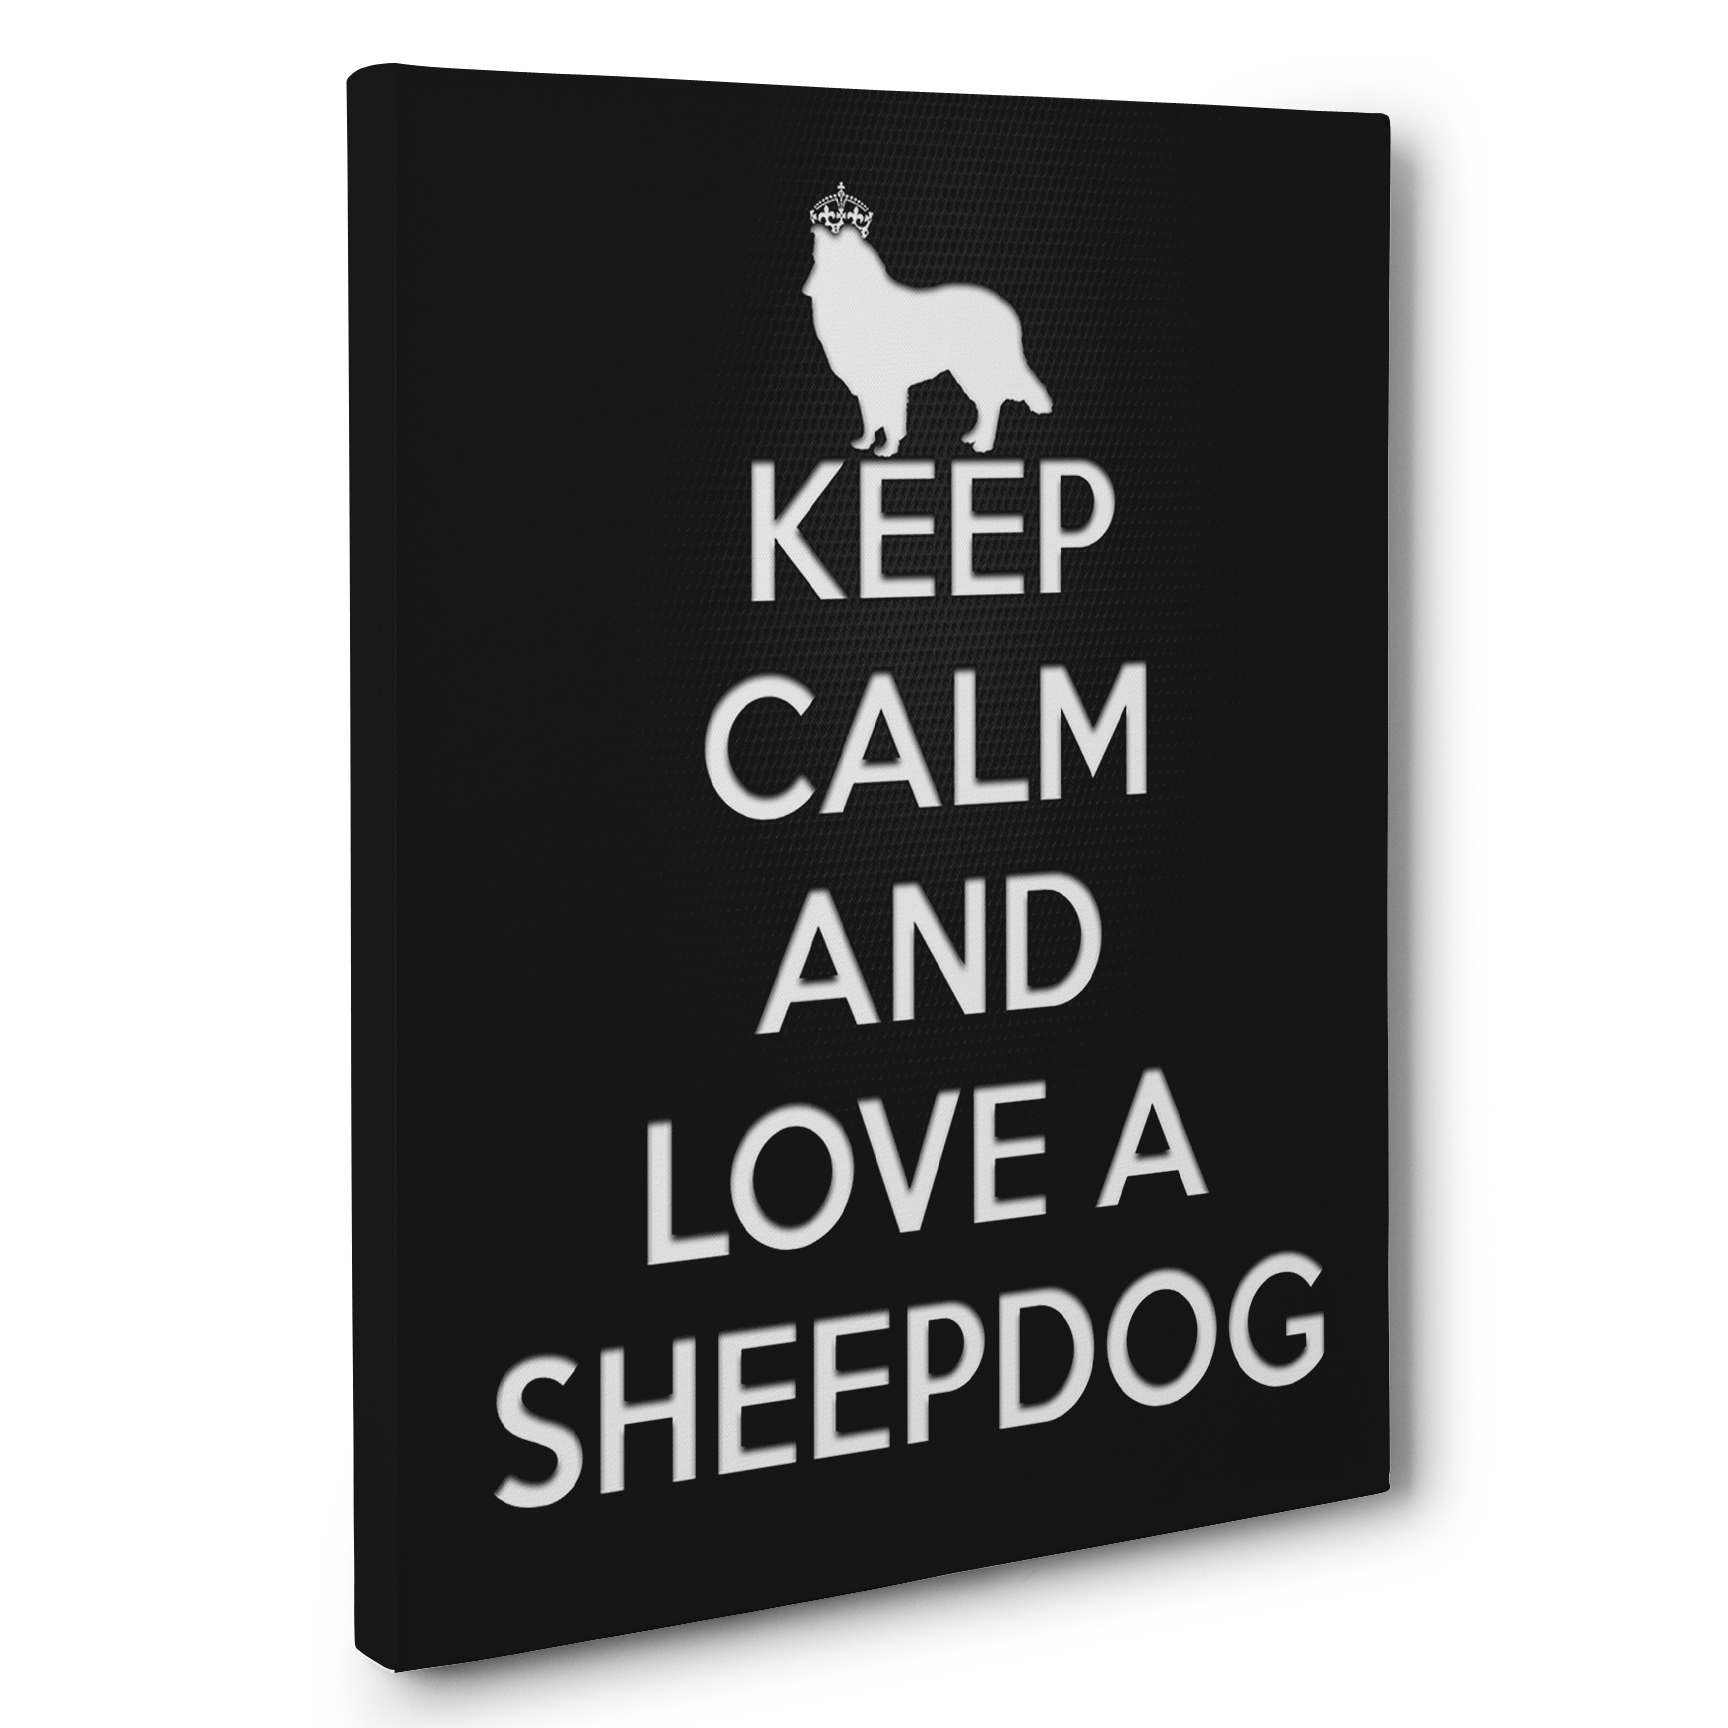 Keep Calm And Love A Sheepdog Canvas Wall Art – Paper Blast within Newest Keep Calm Canvas Wall Art